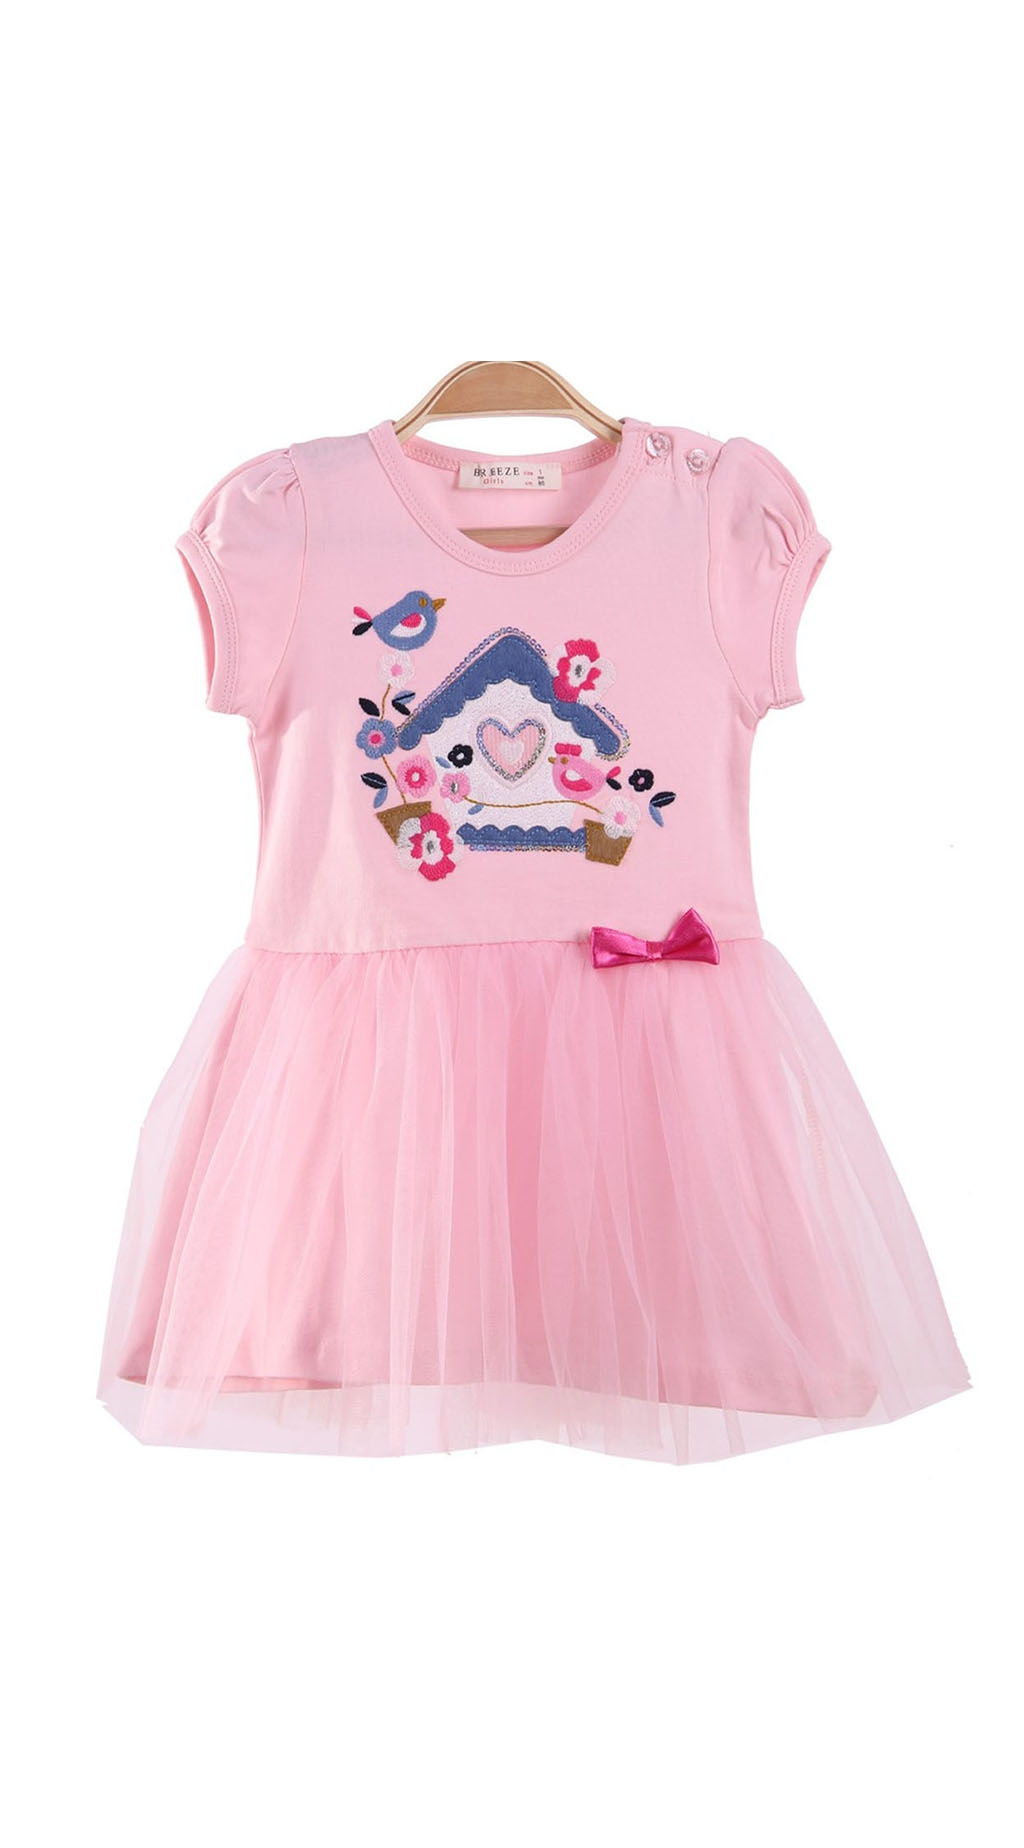 Dress with a short sleeve tulle